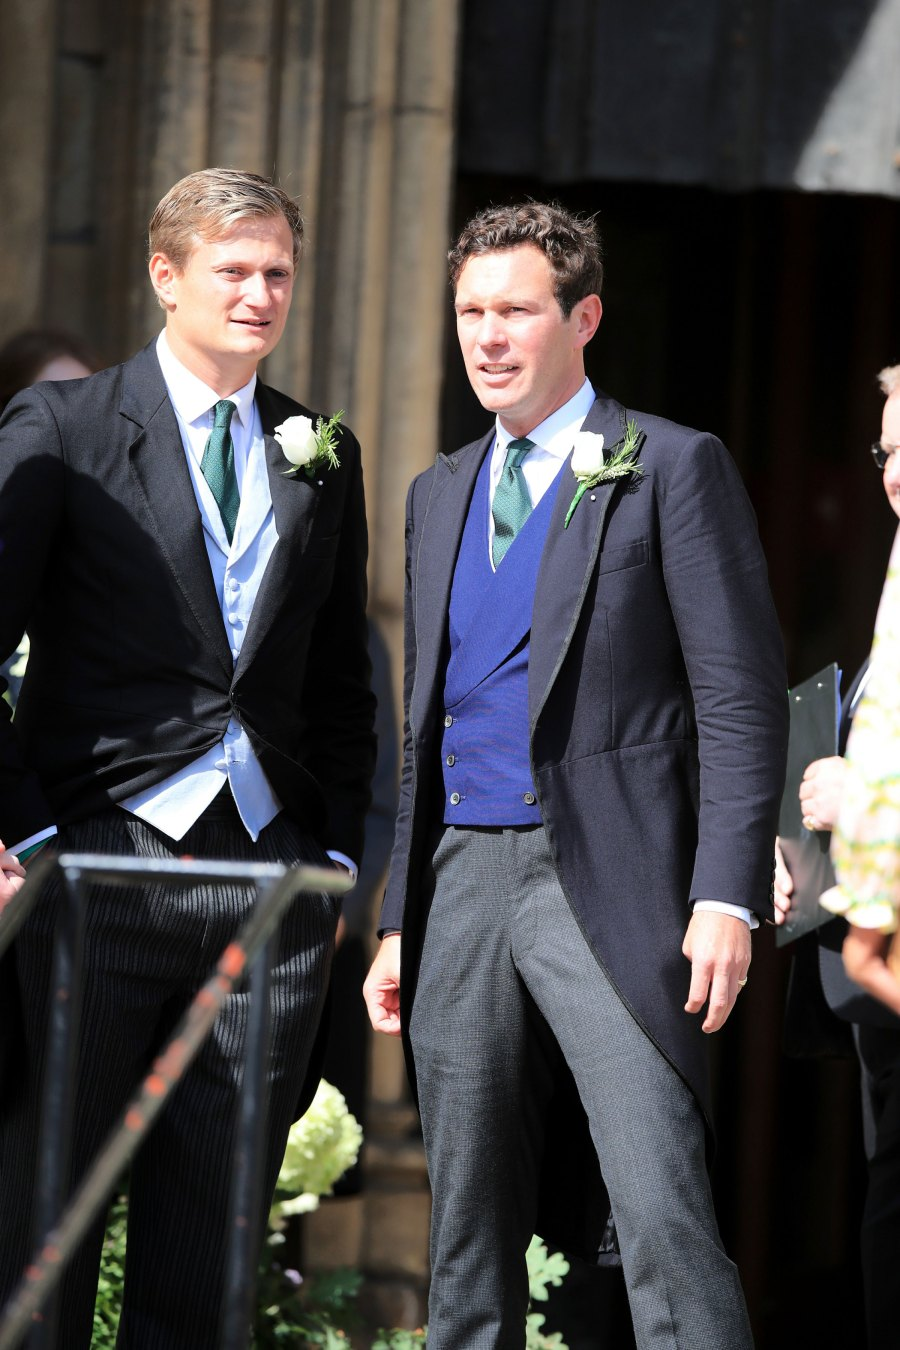 Jack Brooksbank Katy Perry, Orlando Bloom, Princess Beatrice and More Celebrity Guests Attend Ellie Goulding's Wedding